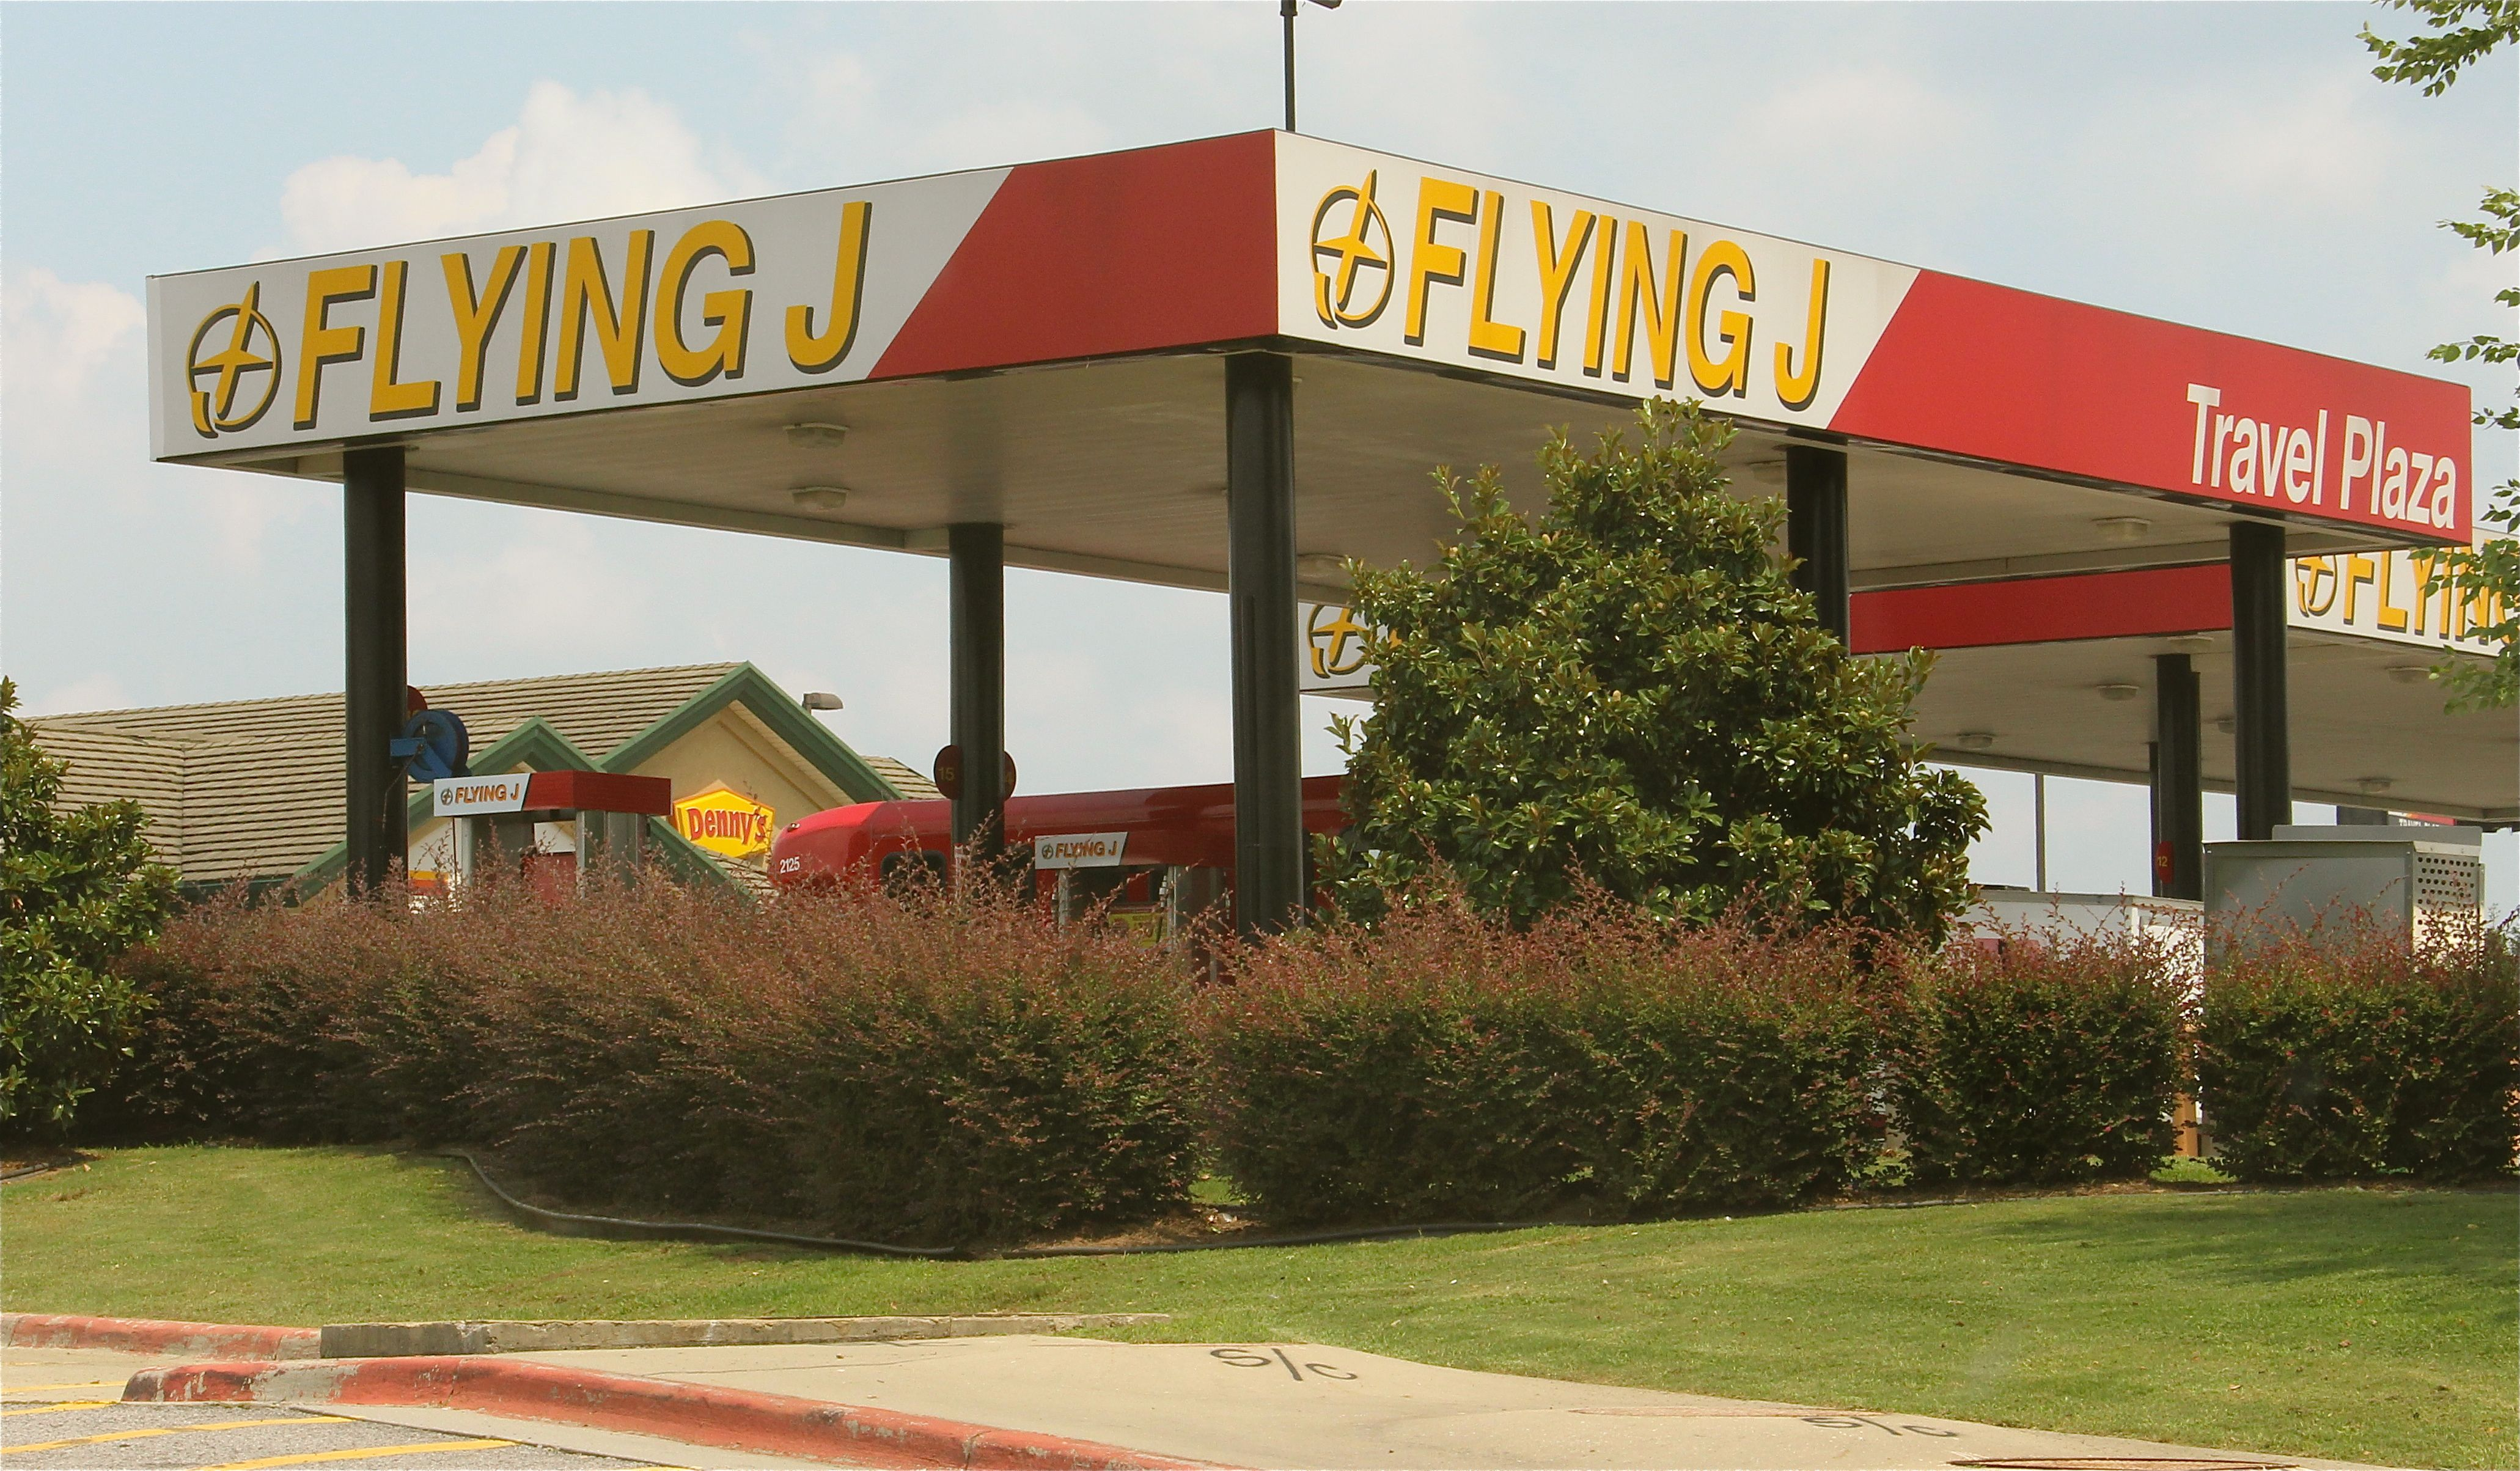 Carrier Claims Pilot Flying J Cost it More Than $70 Million